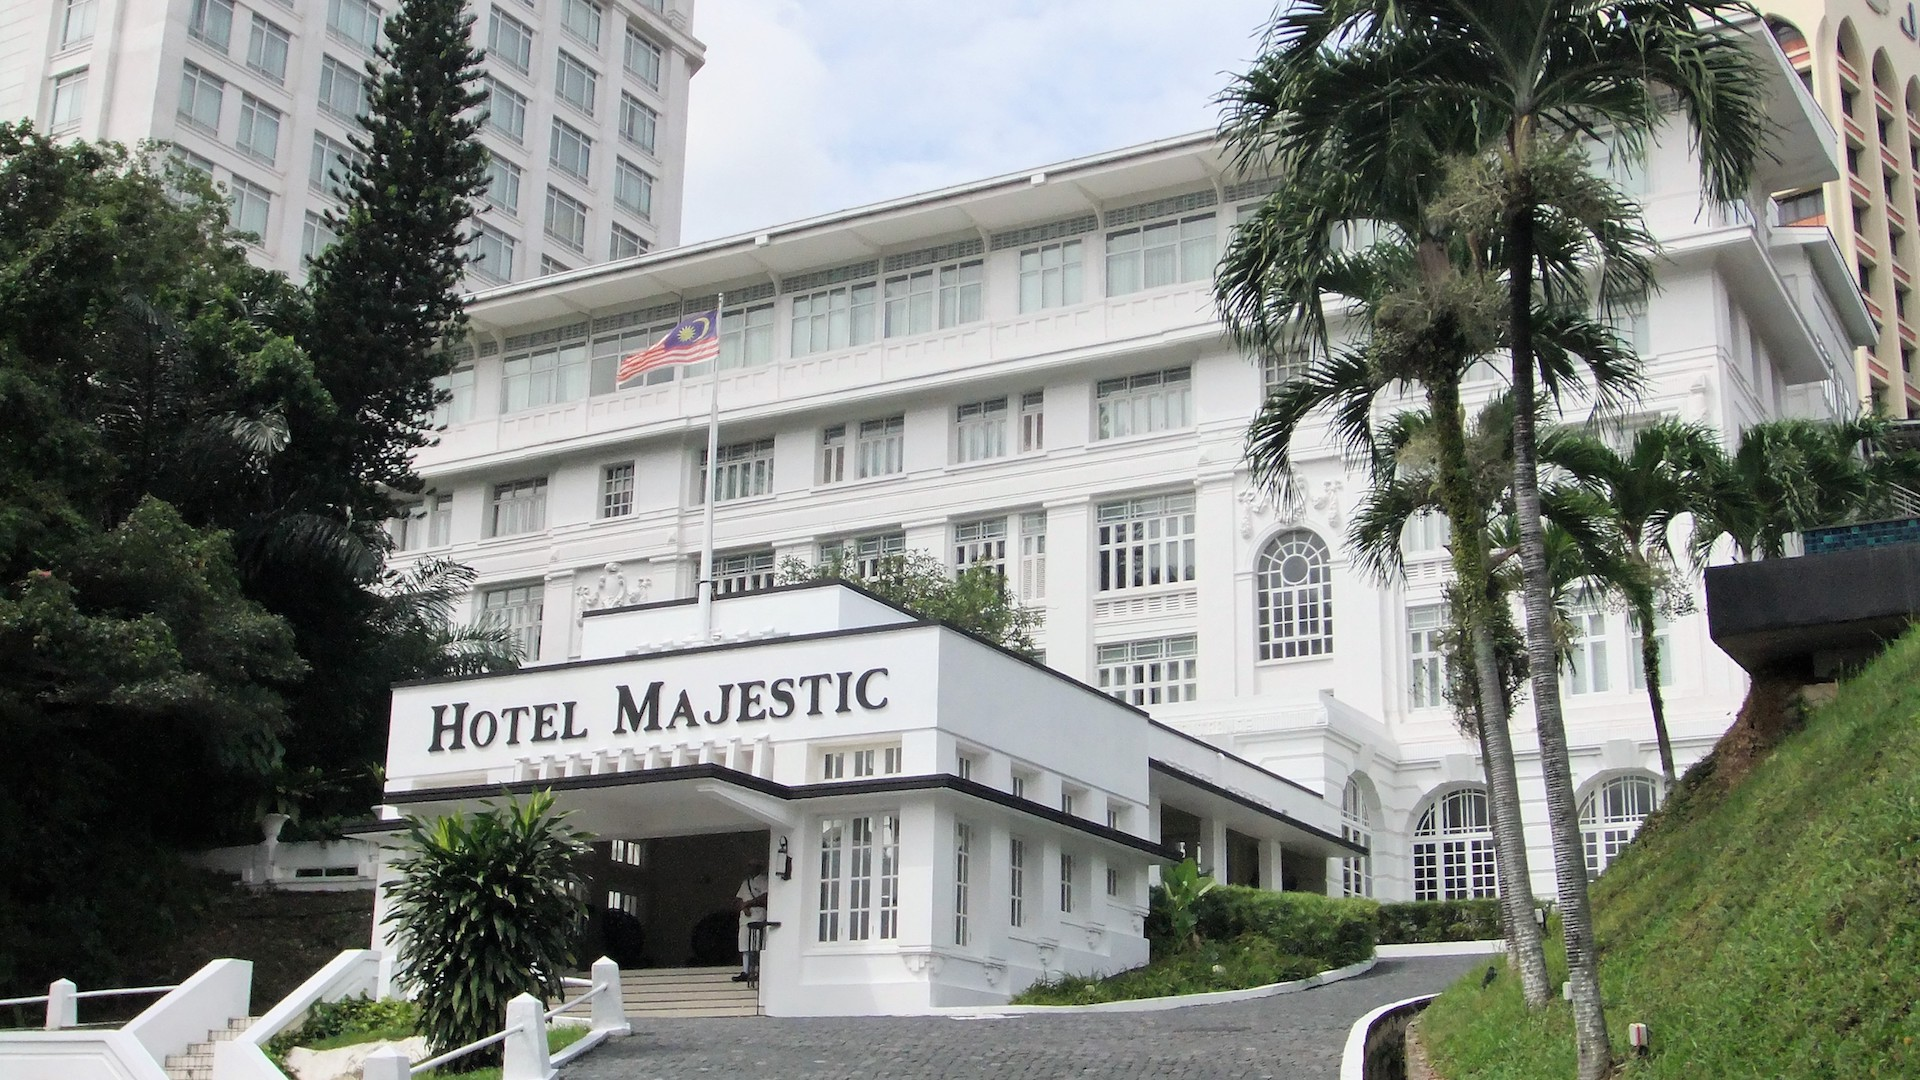 The Majestic Hotel and The Top 7 Things to Do in Kuala Lumpur